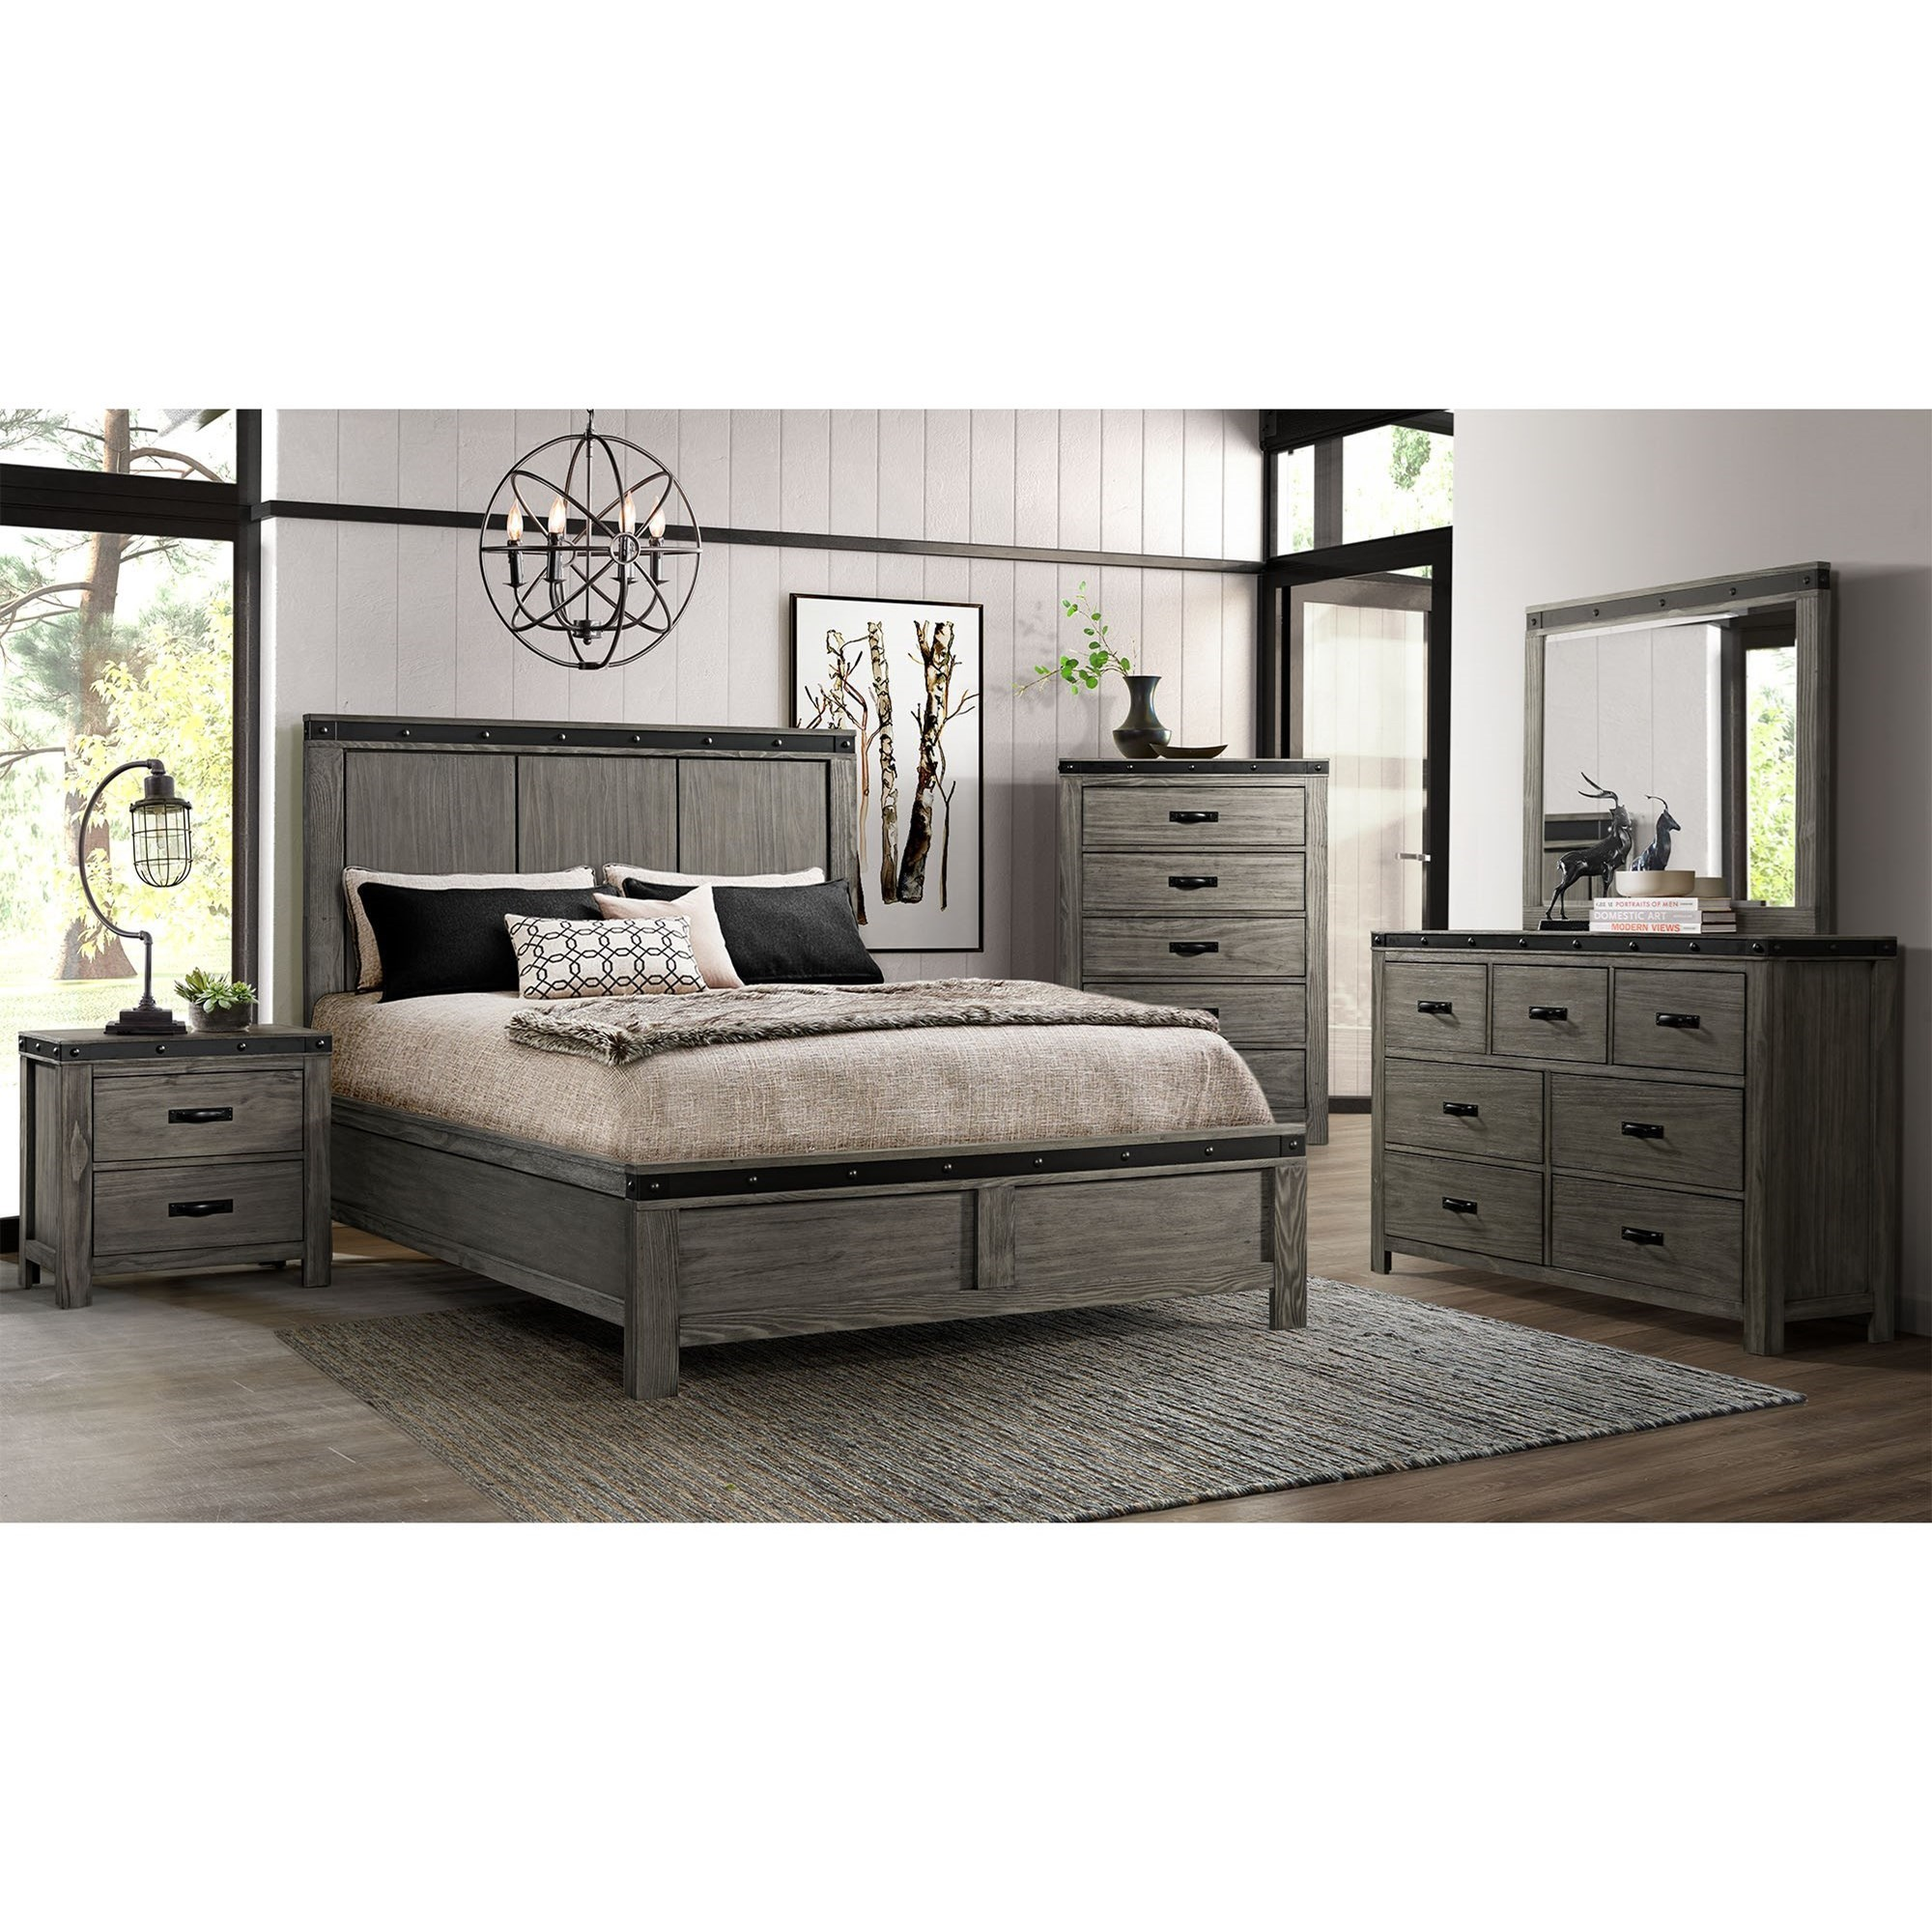 Elements Wade Contemporary King Panel 5 Piece Bedroom Set Royal Furniture Bedroom Groups